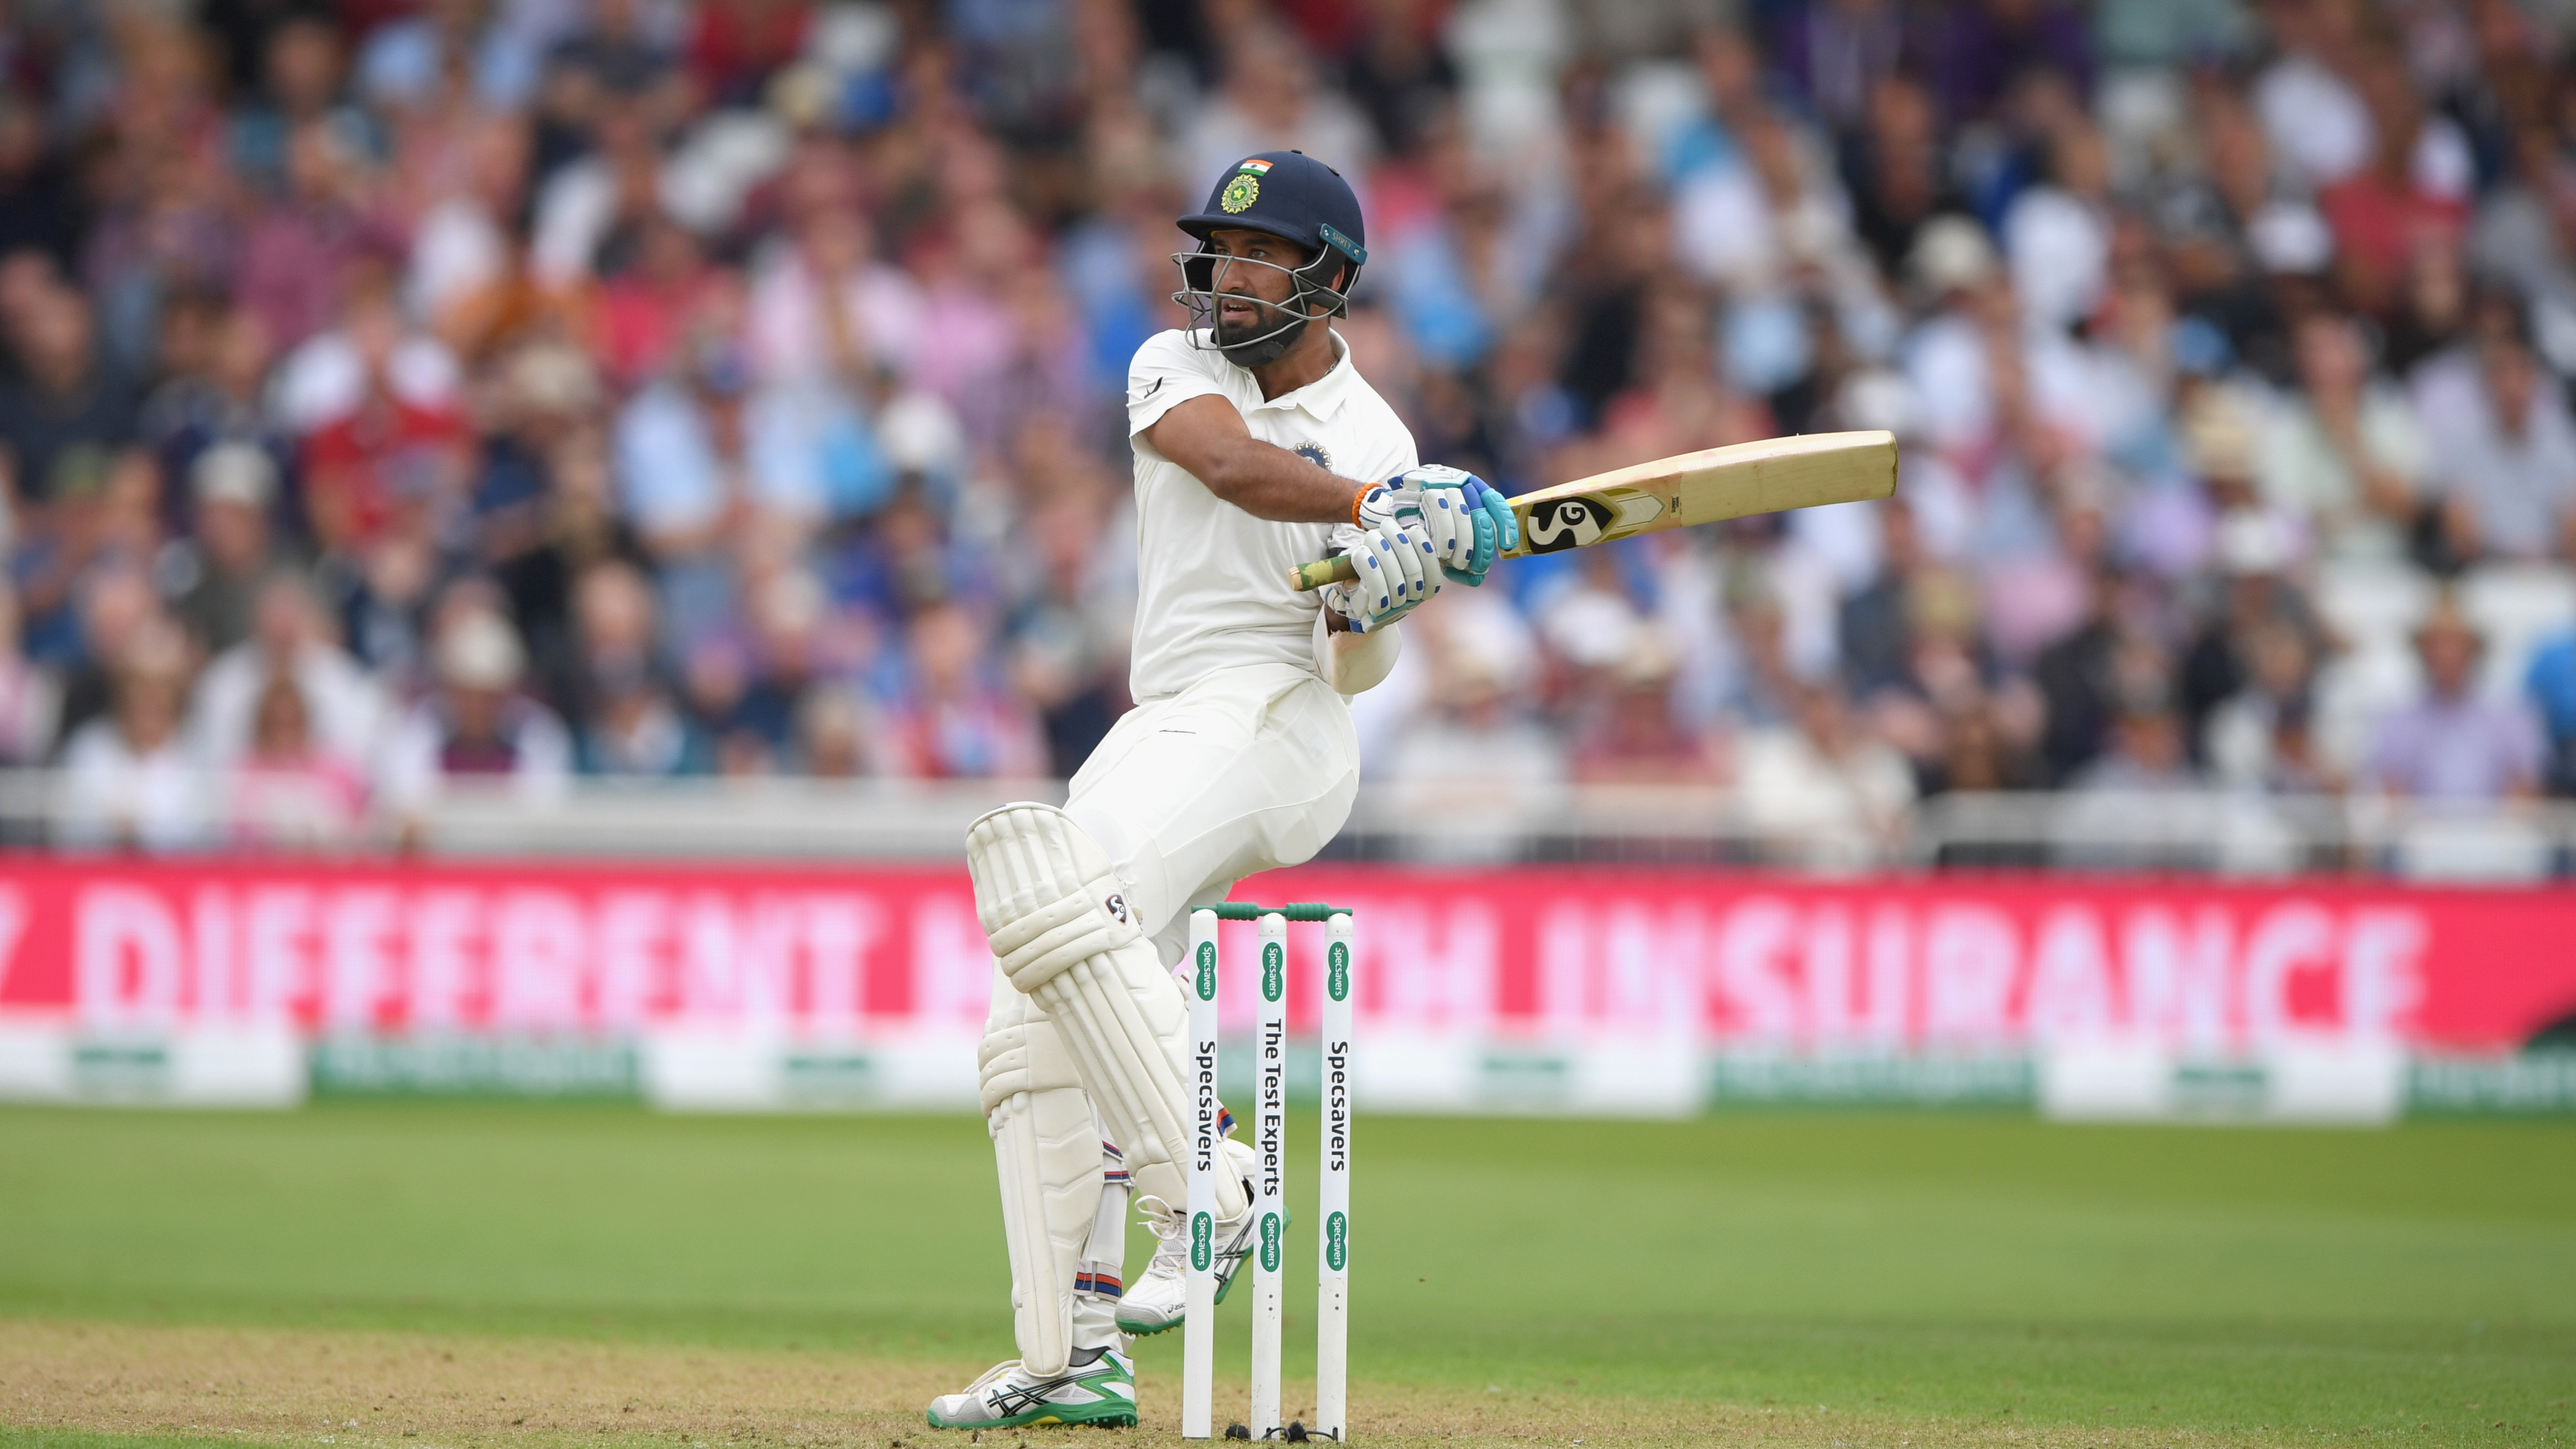 ENG vs IND 2018: Playing county cricket did help me, says Cheteshwar Pujara